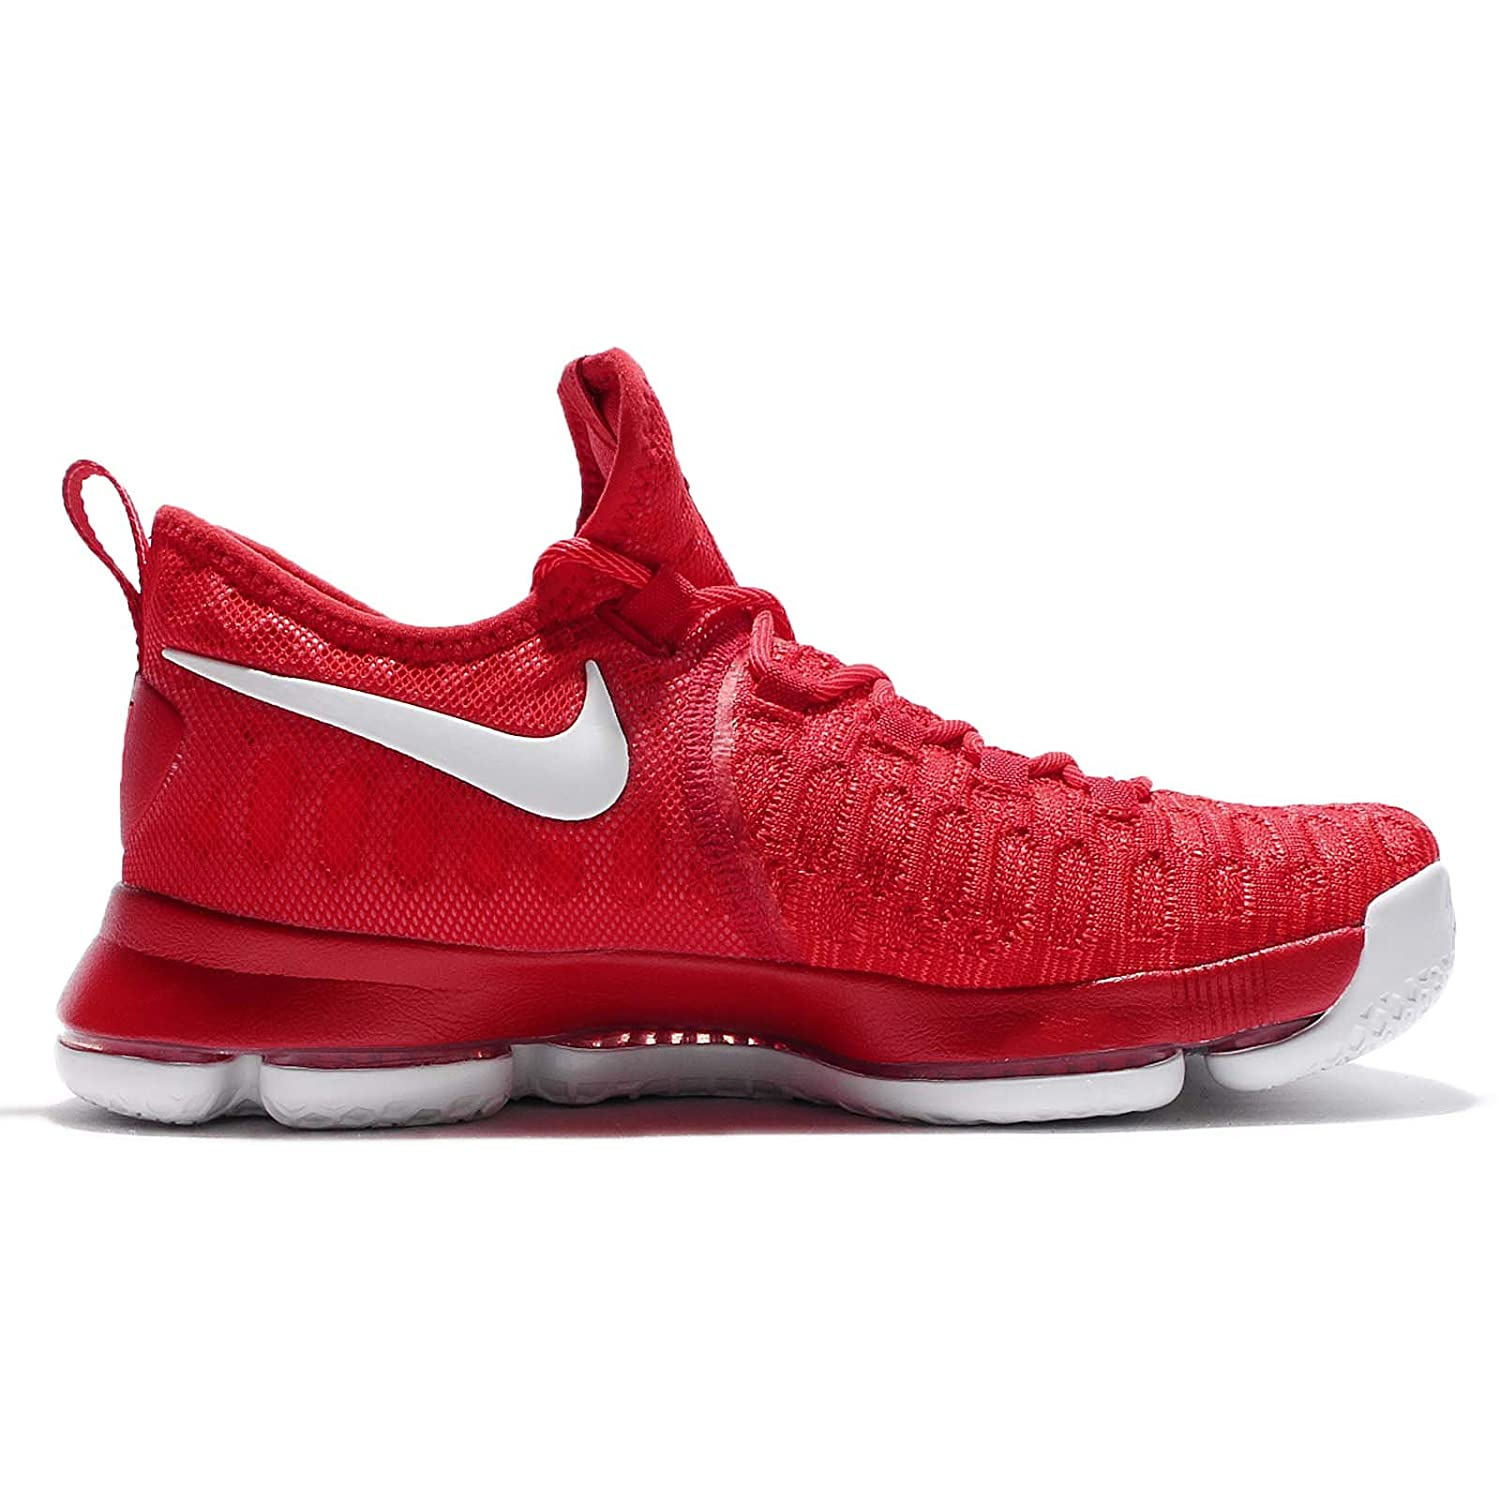 c8ecd5e818b low cost amazon nike mens zoom kd 9 ep university red white 8.5 m us  basketball